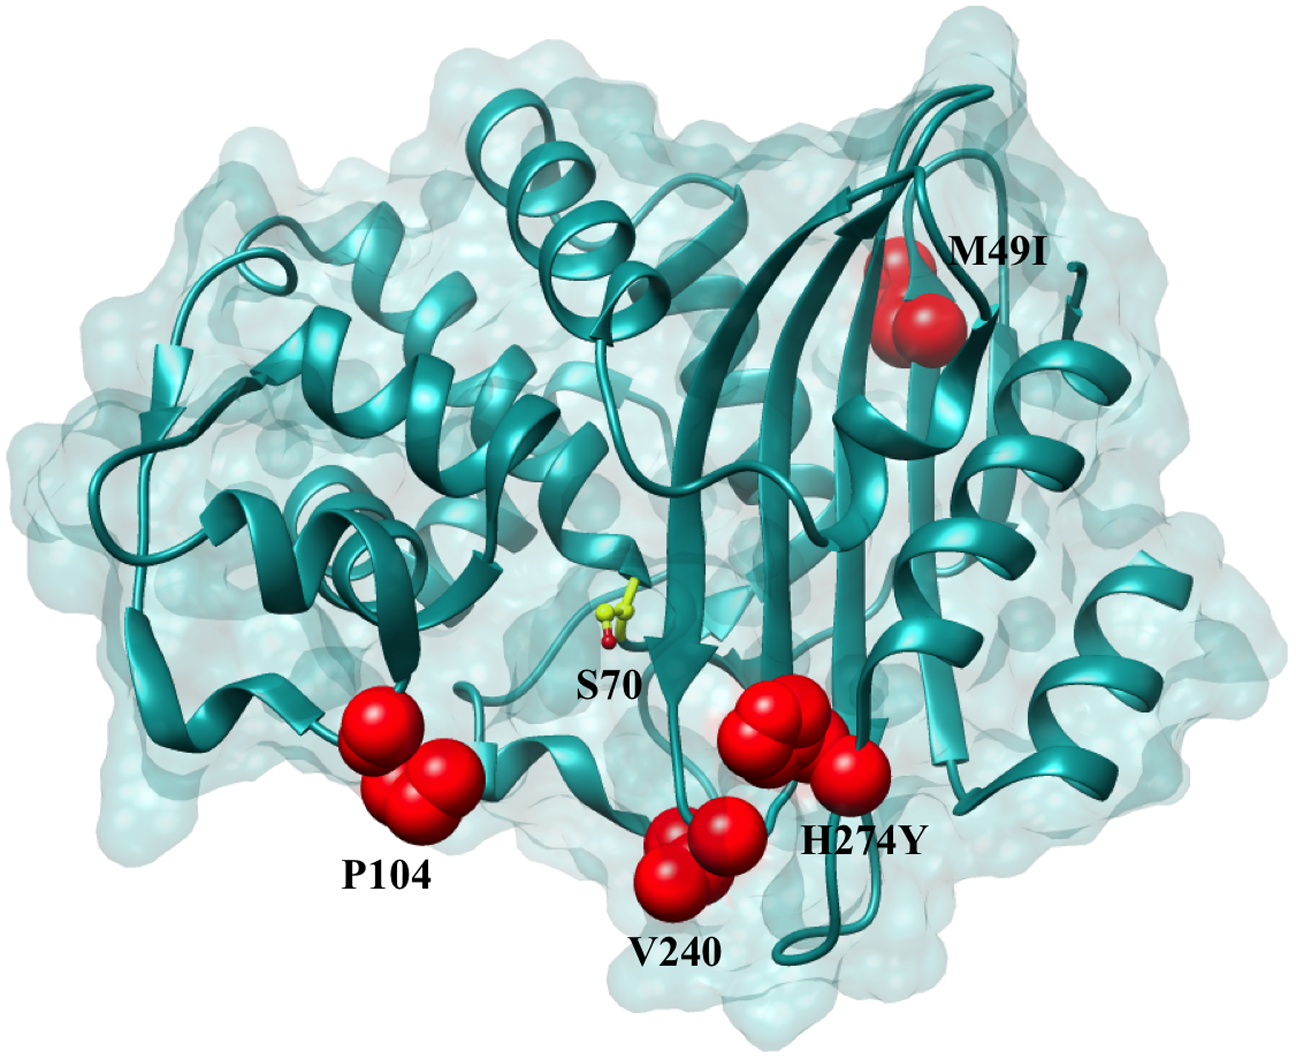 Positions of the variants residues included in this study on the KPC-2 enzyme.